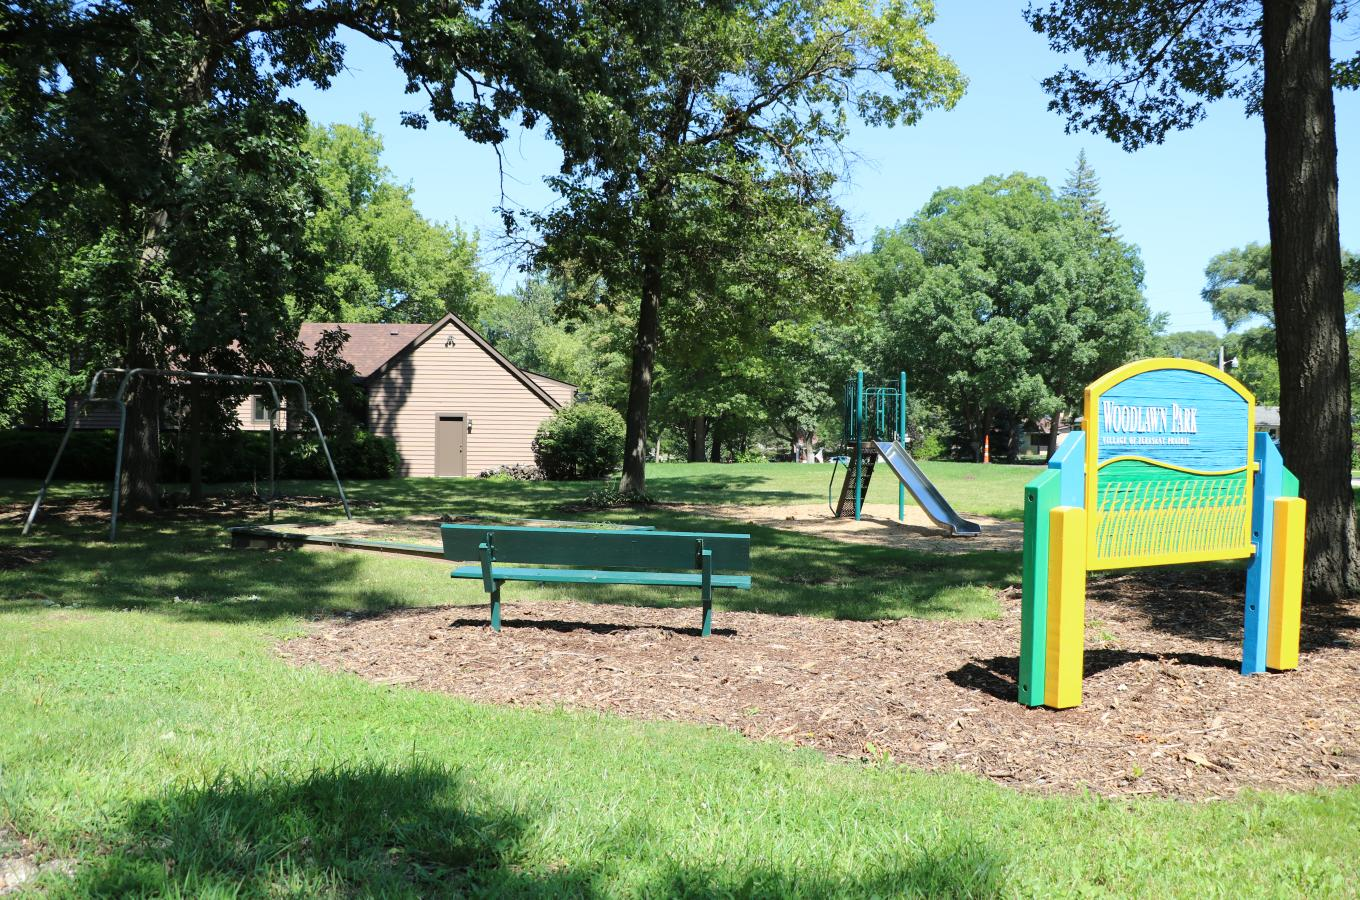 Woodlawn Park Sign with playground equipment in back V Pic